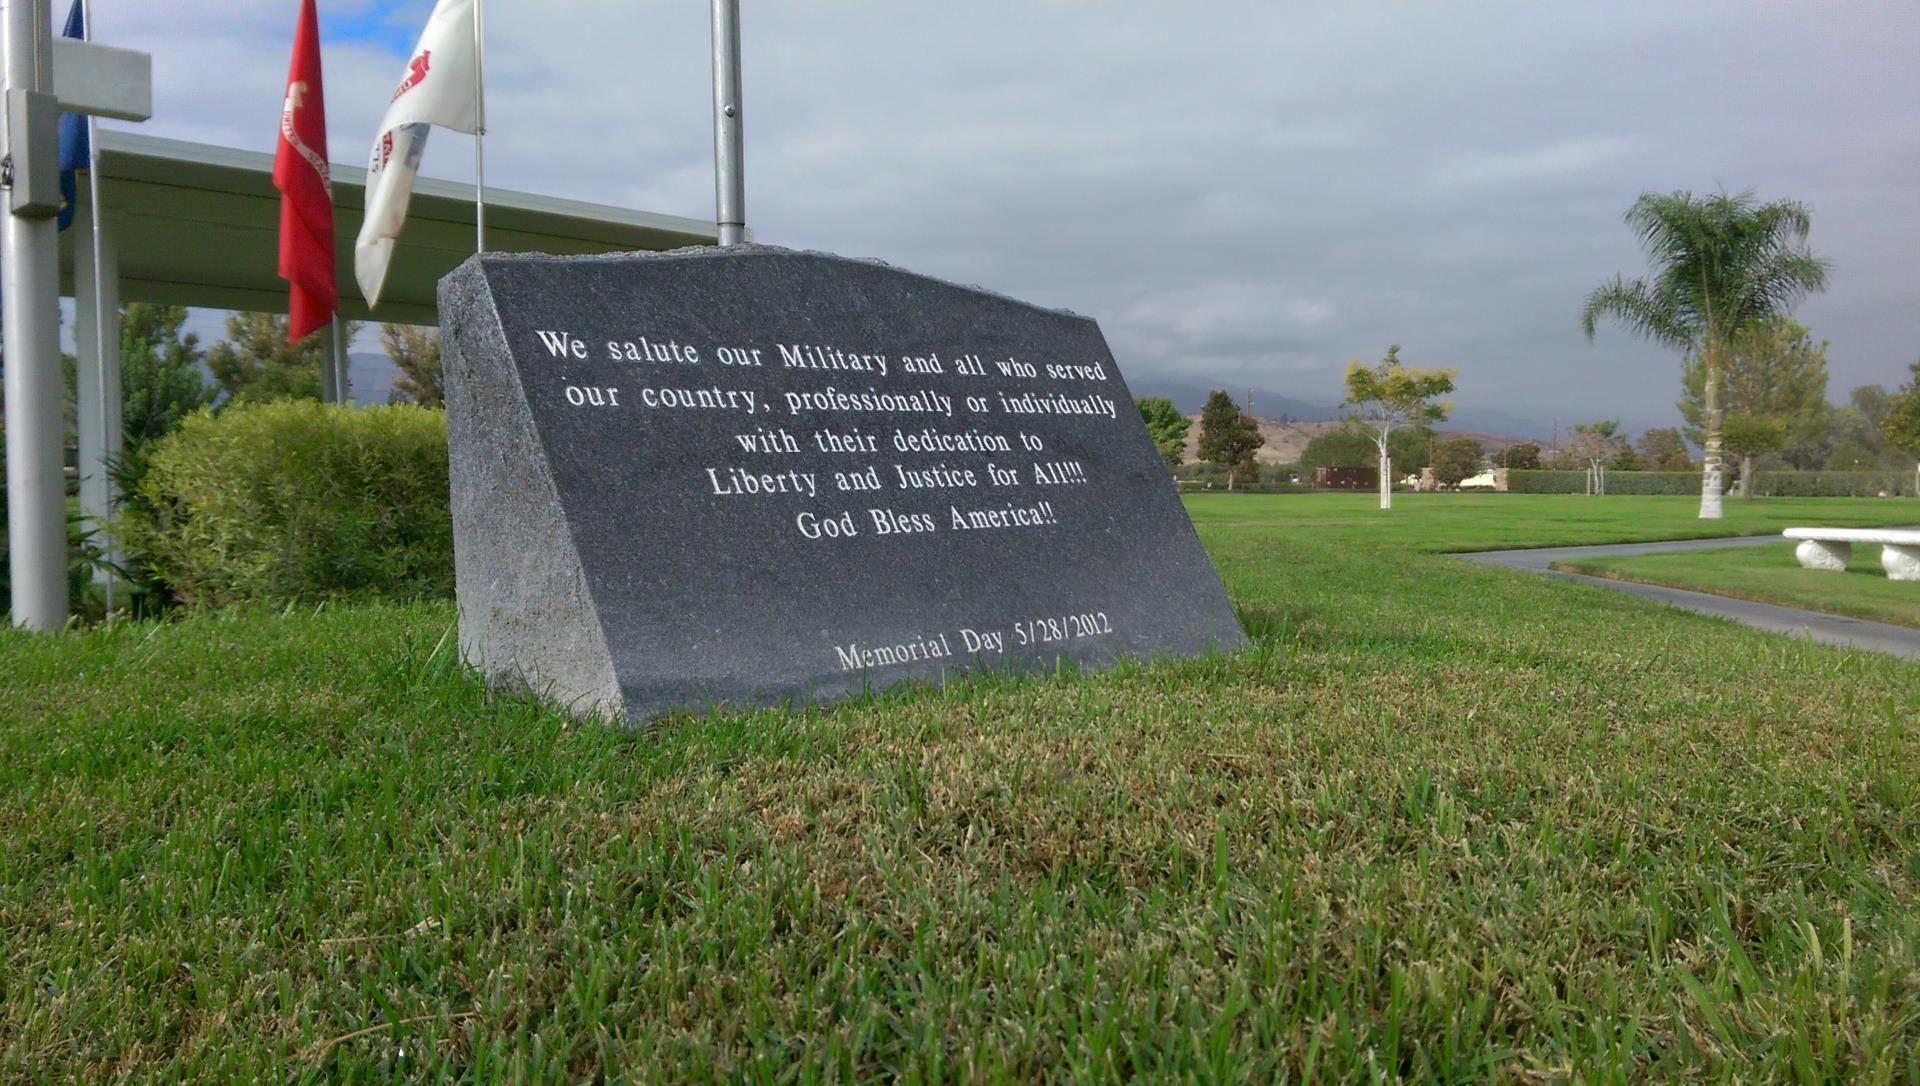 stone memorial day monument